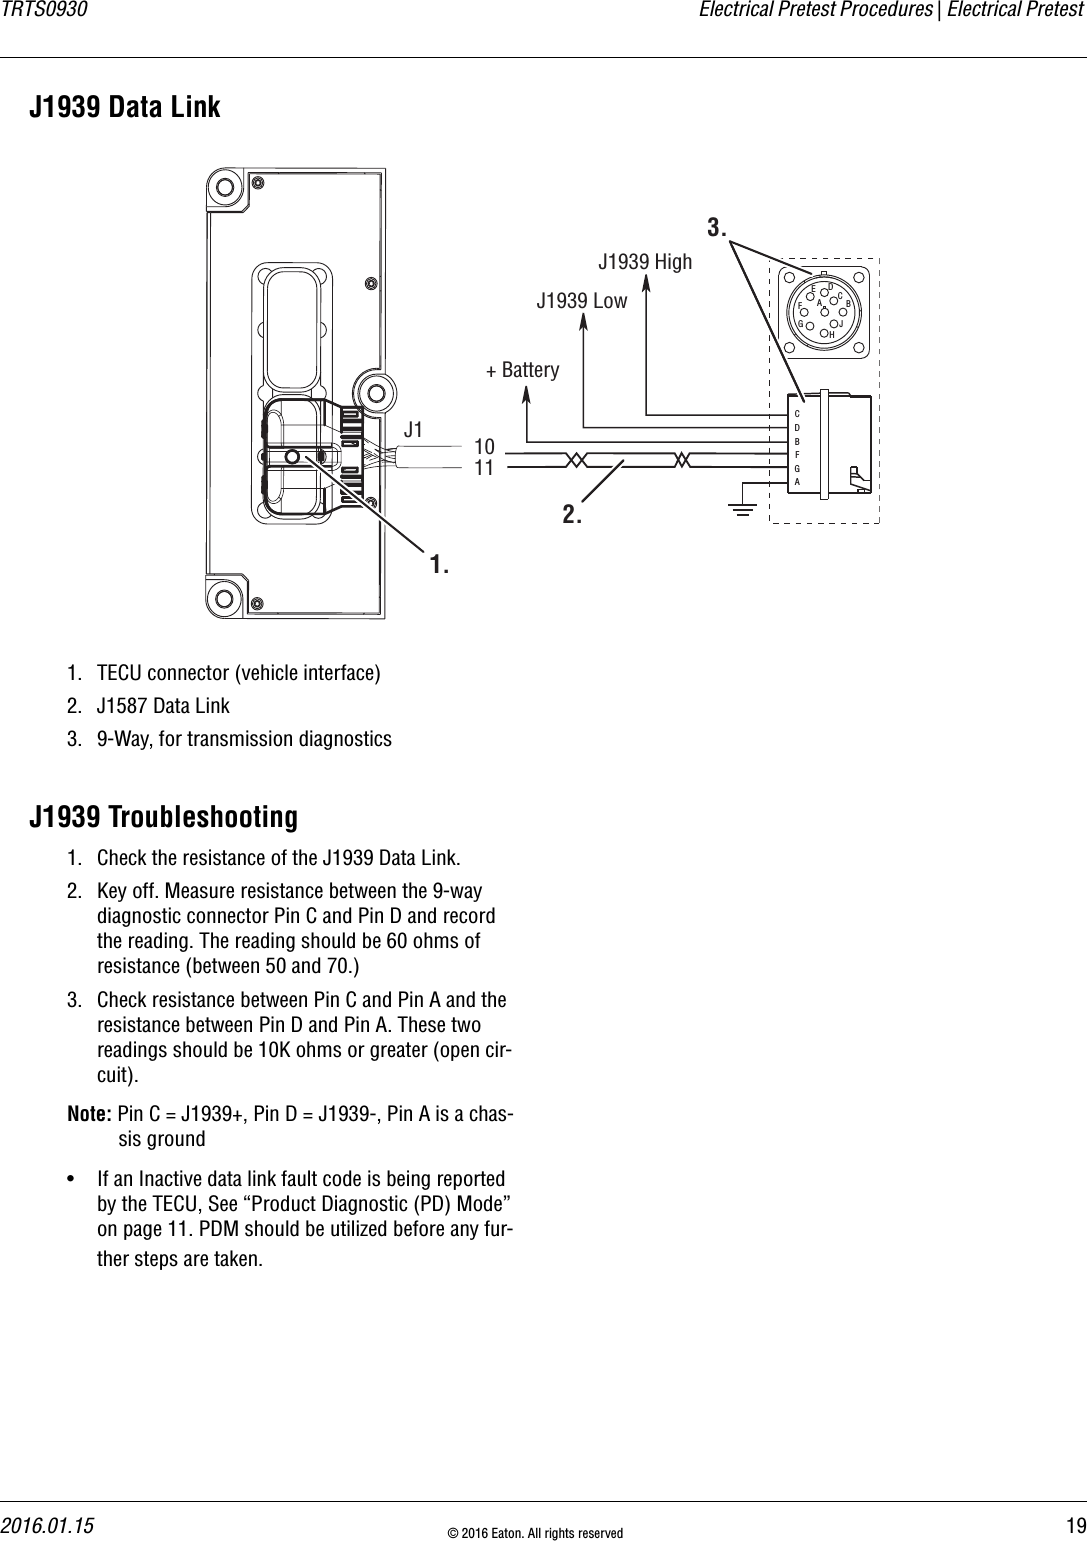 Trts0930 Eaton Gen 3 Autoshift Ultrashift Troubleshooting Guide